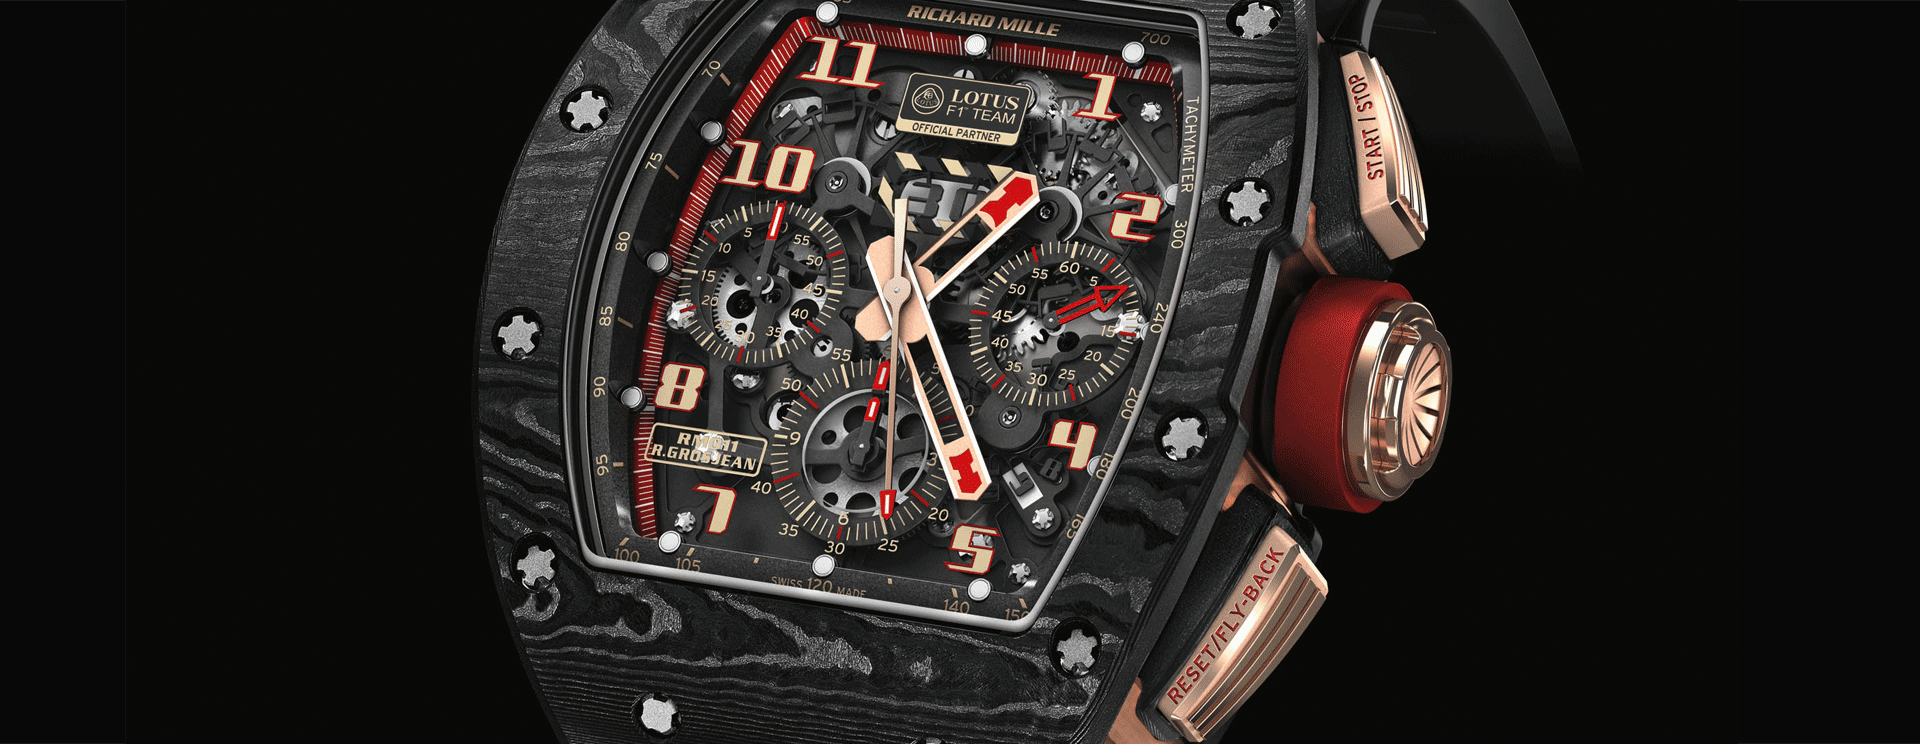 RM011 NTPT CARBON ROSE GOLD ROMAIN GROSJEAN LOTUS F1 FLYBACK CHRONOGRAPH